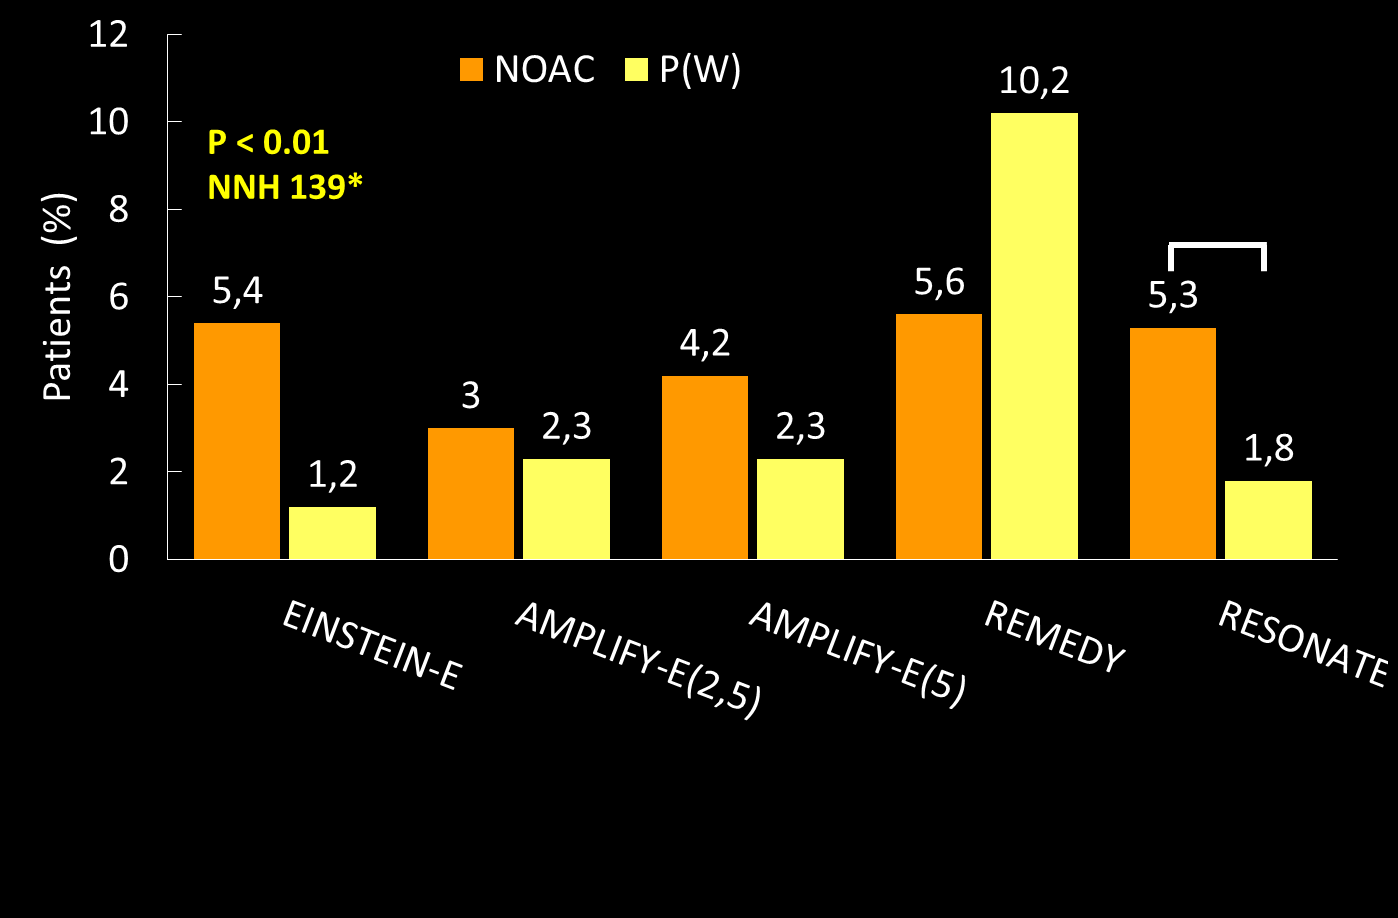 Phase III VTE_Ext trials CRNMBs HR 0.54 RR 1.29** NNH 200*** RR 1.82 NNH 63*** HR 2.92 *one major bleeding ** 95%CI: 0.72-2.33 *** one major bleeding or CRNMB 1.